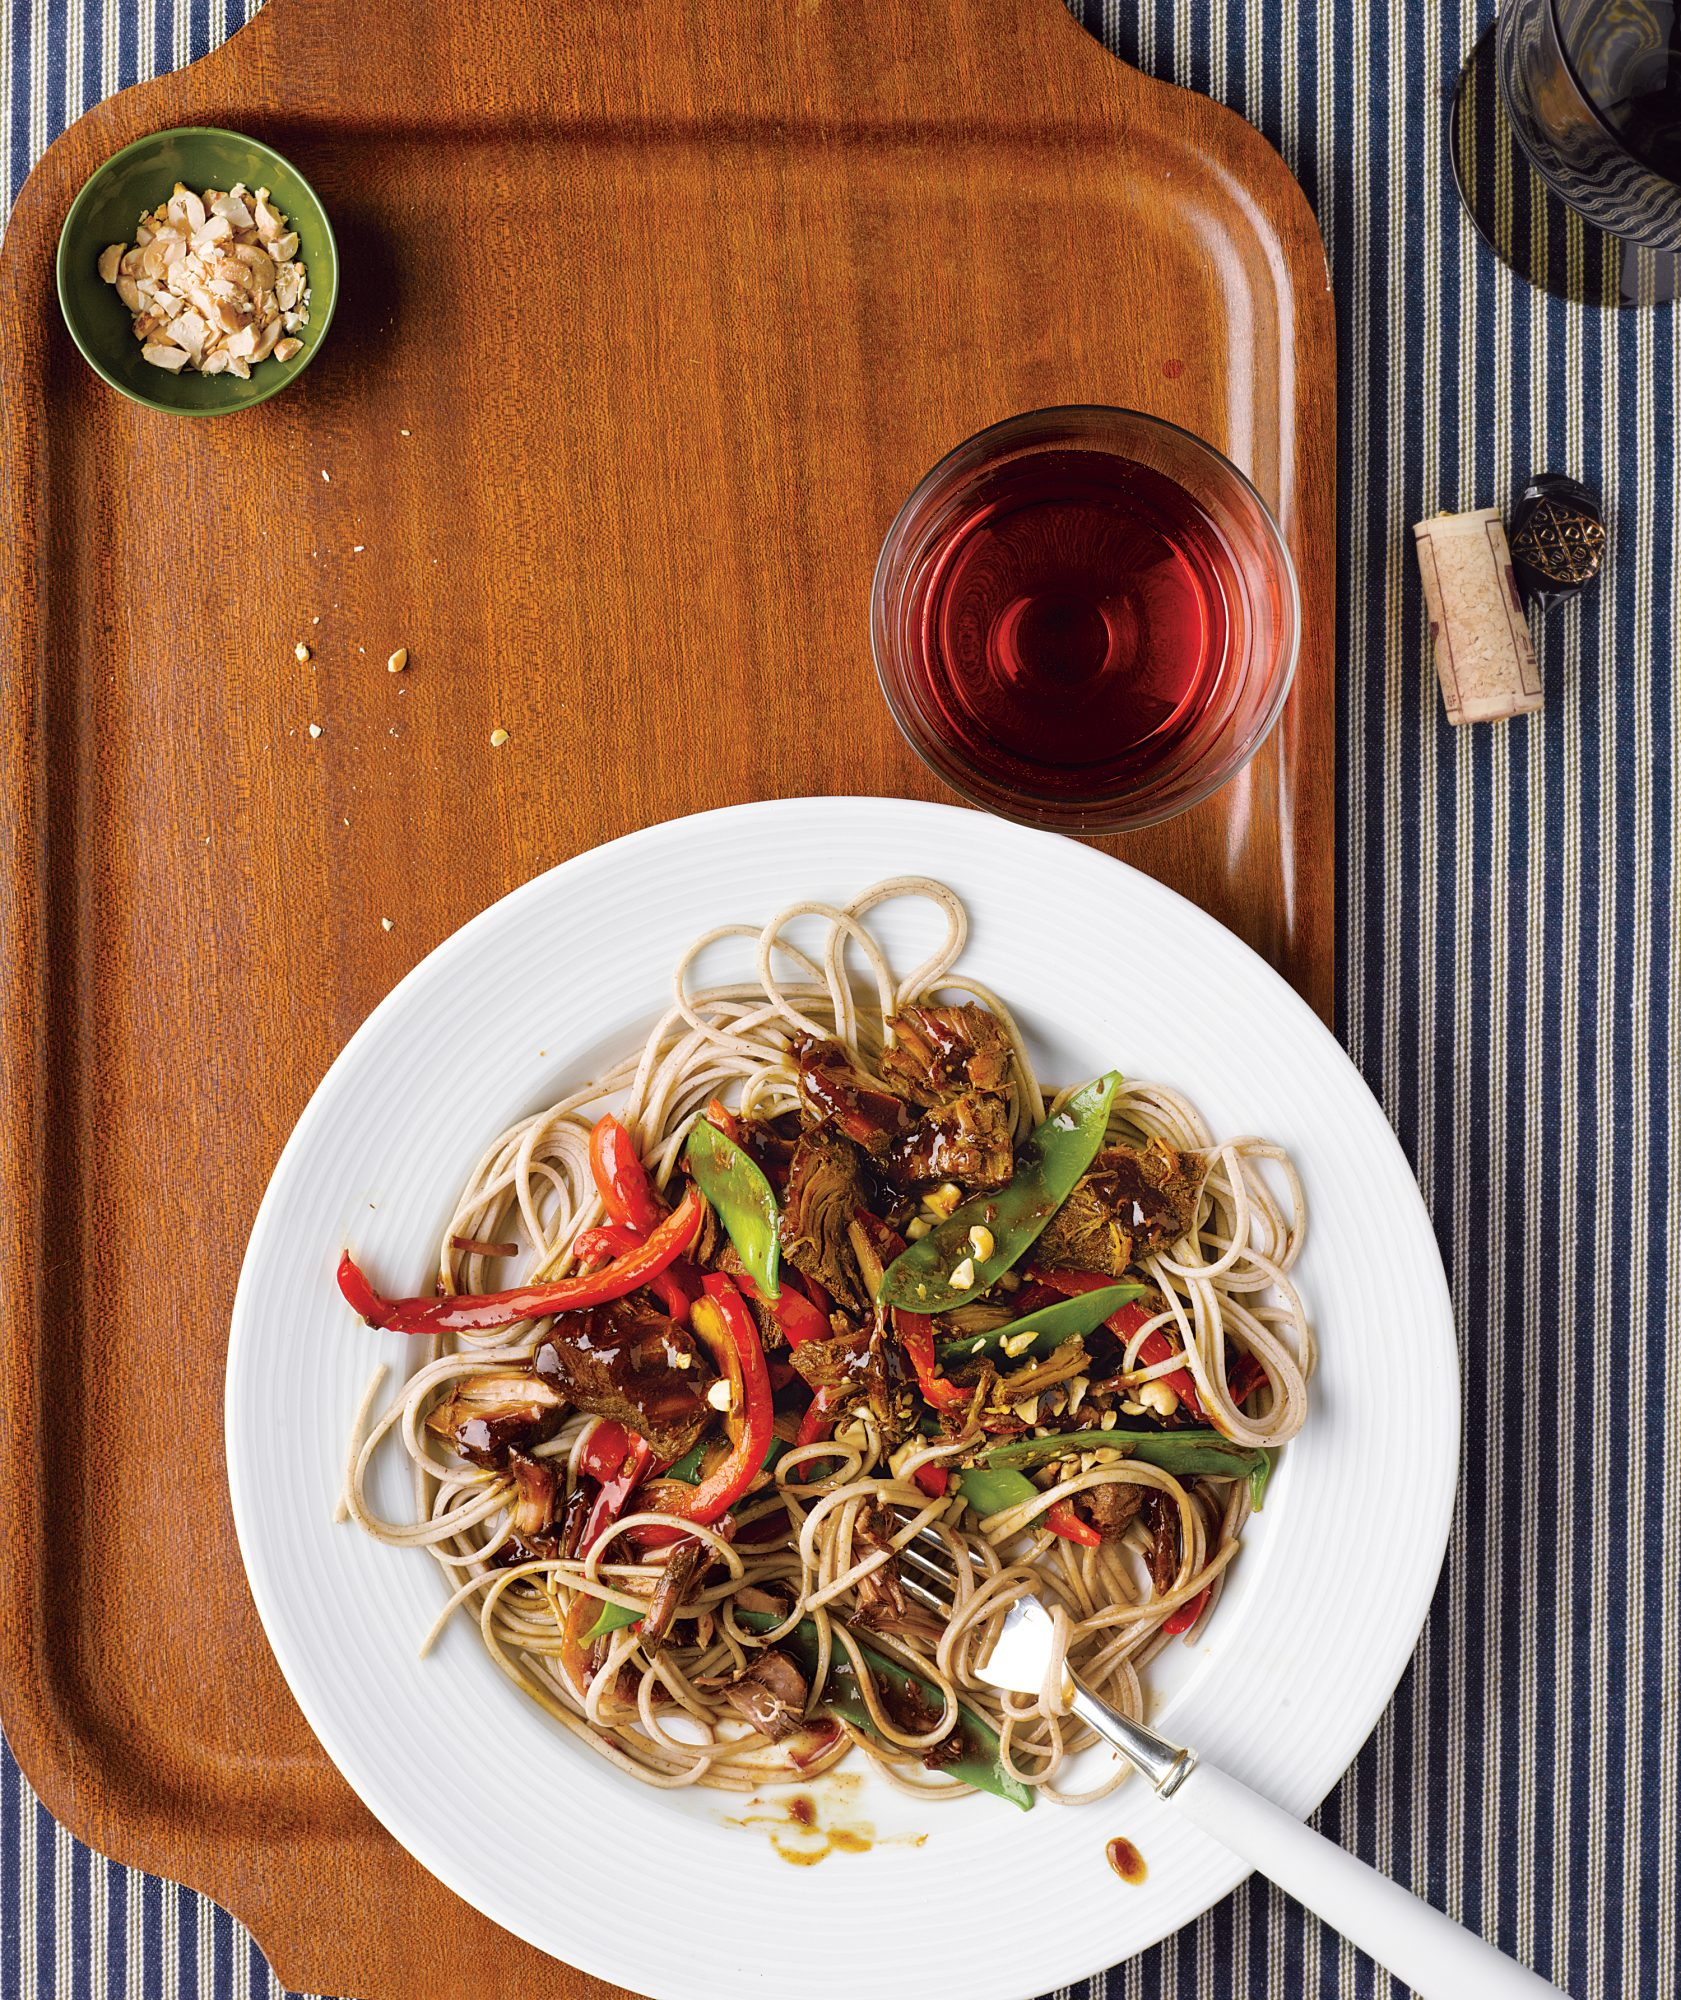 Slow-Cooker Asian Pork With Snow Peas, Red Peppers, and Soba Noodles (6 Delicious Soba Noodle Recipes)